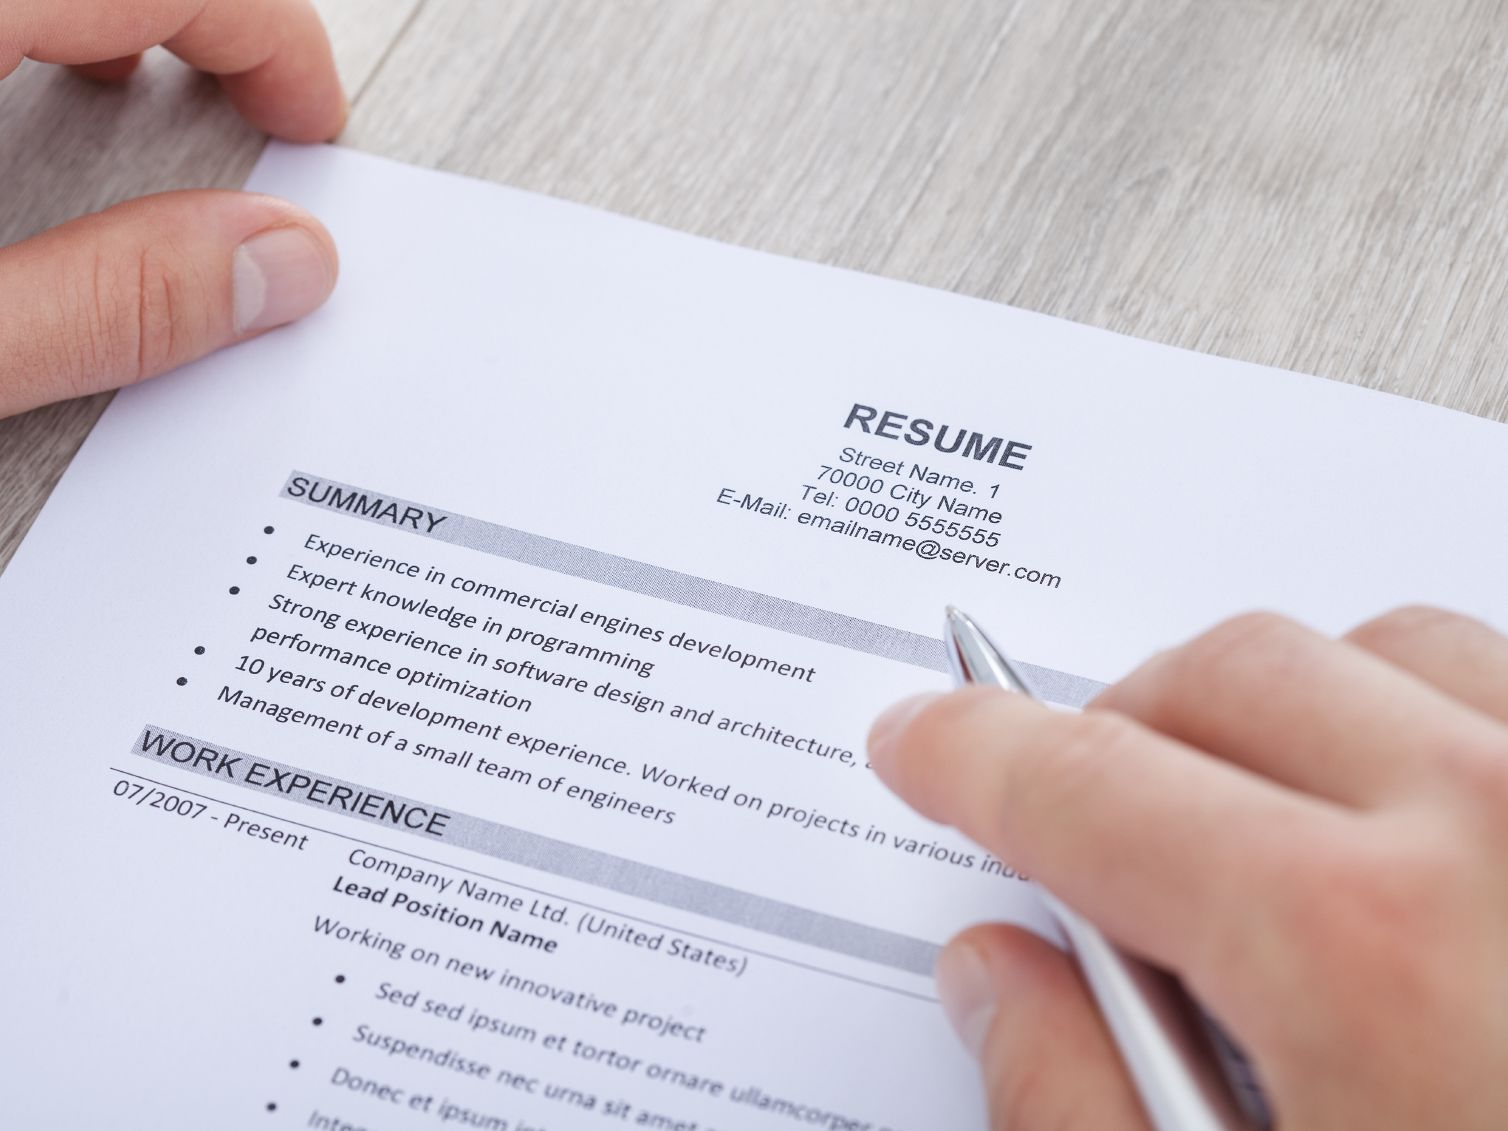 to write resume summary statement with examples drafting services 000033354382medium Resume Resume Drafting Services